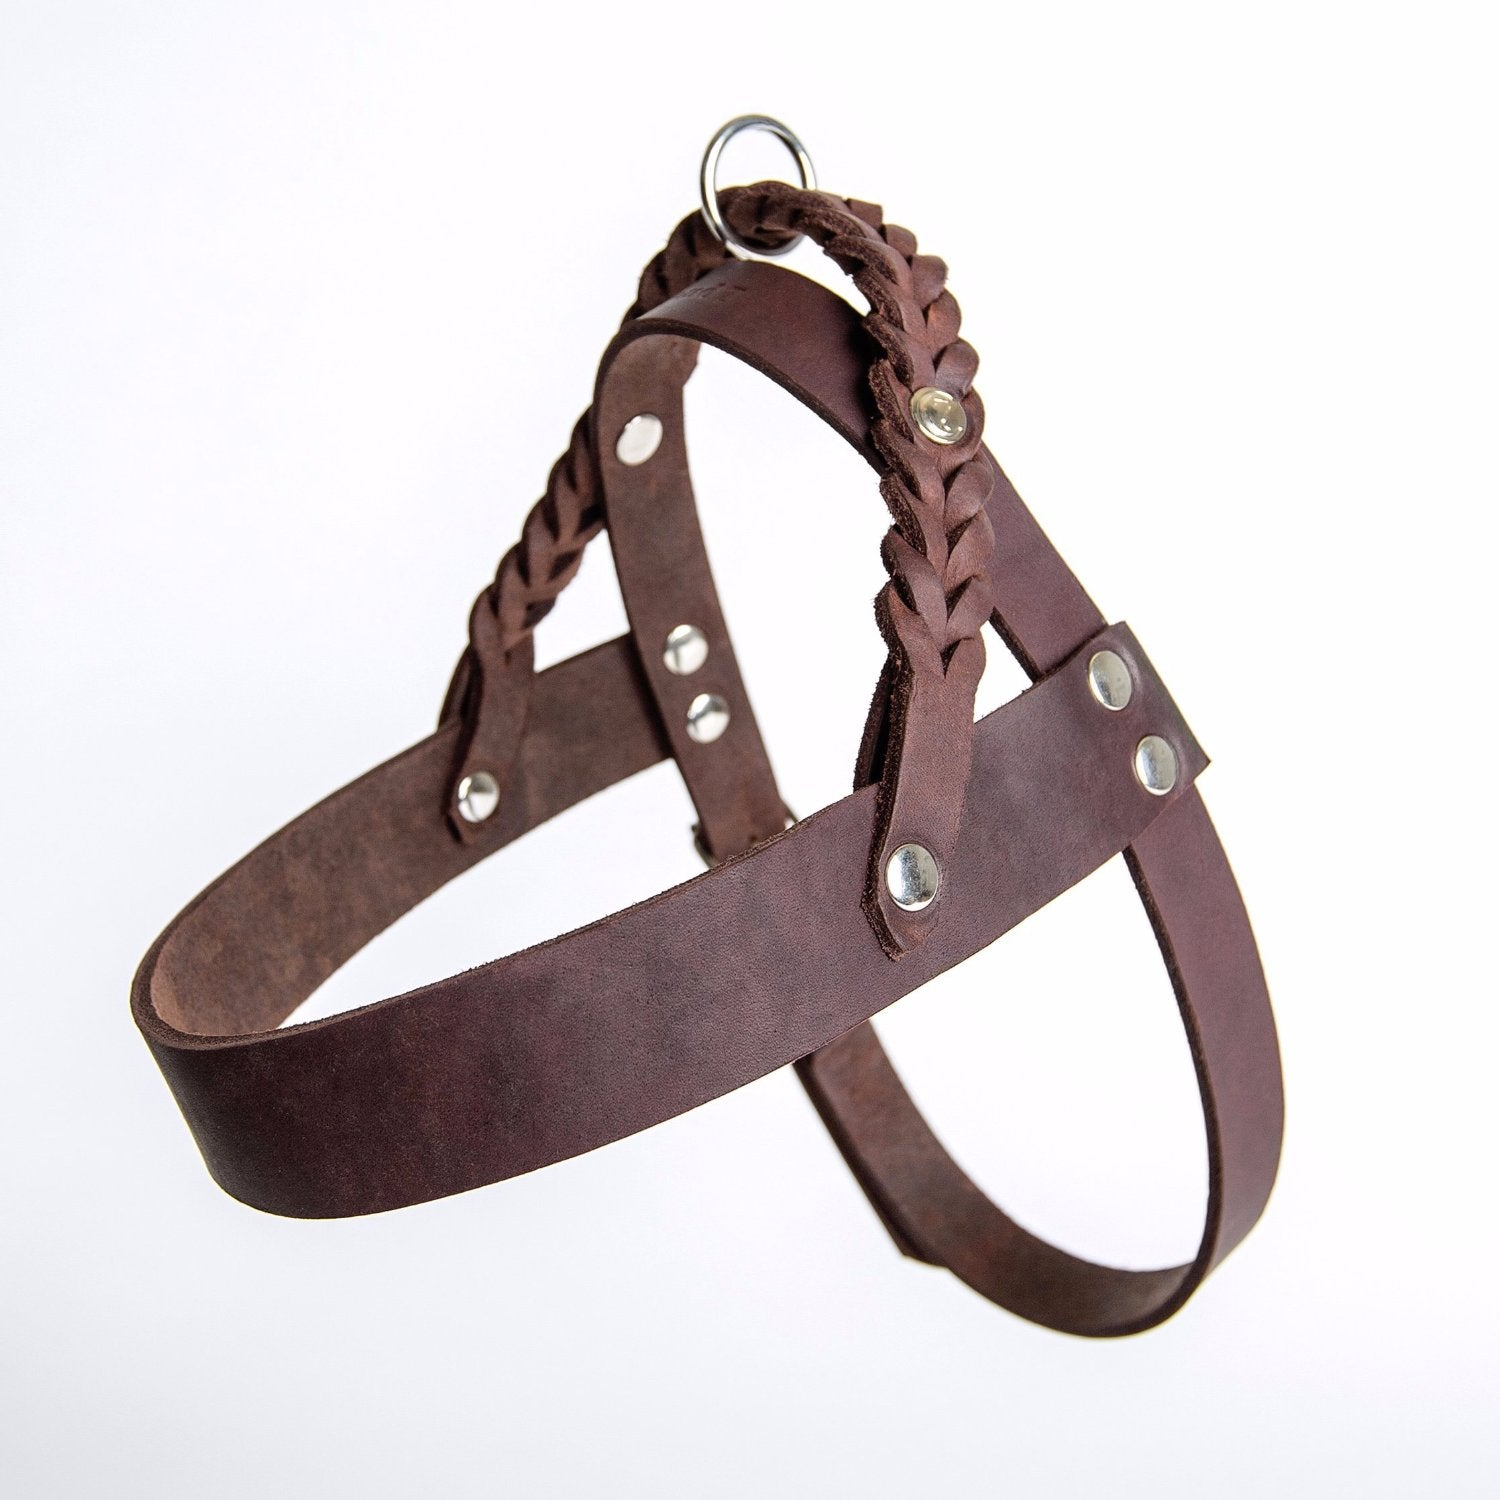 soft leather dog harness